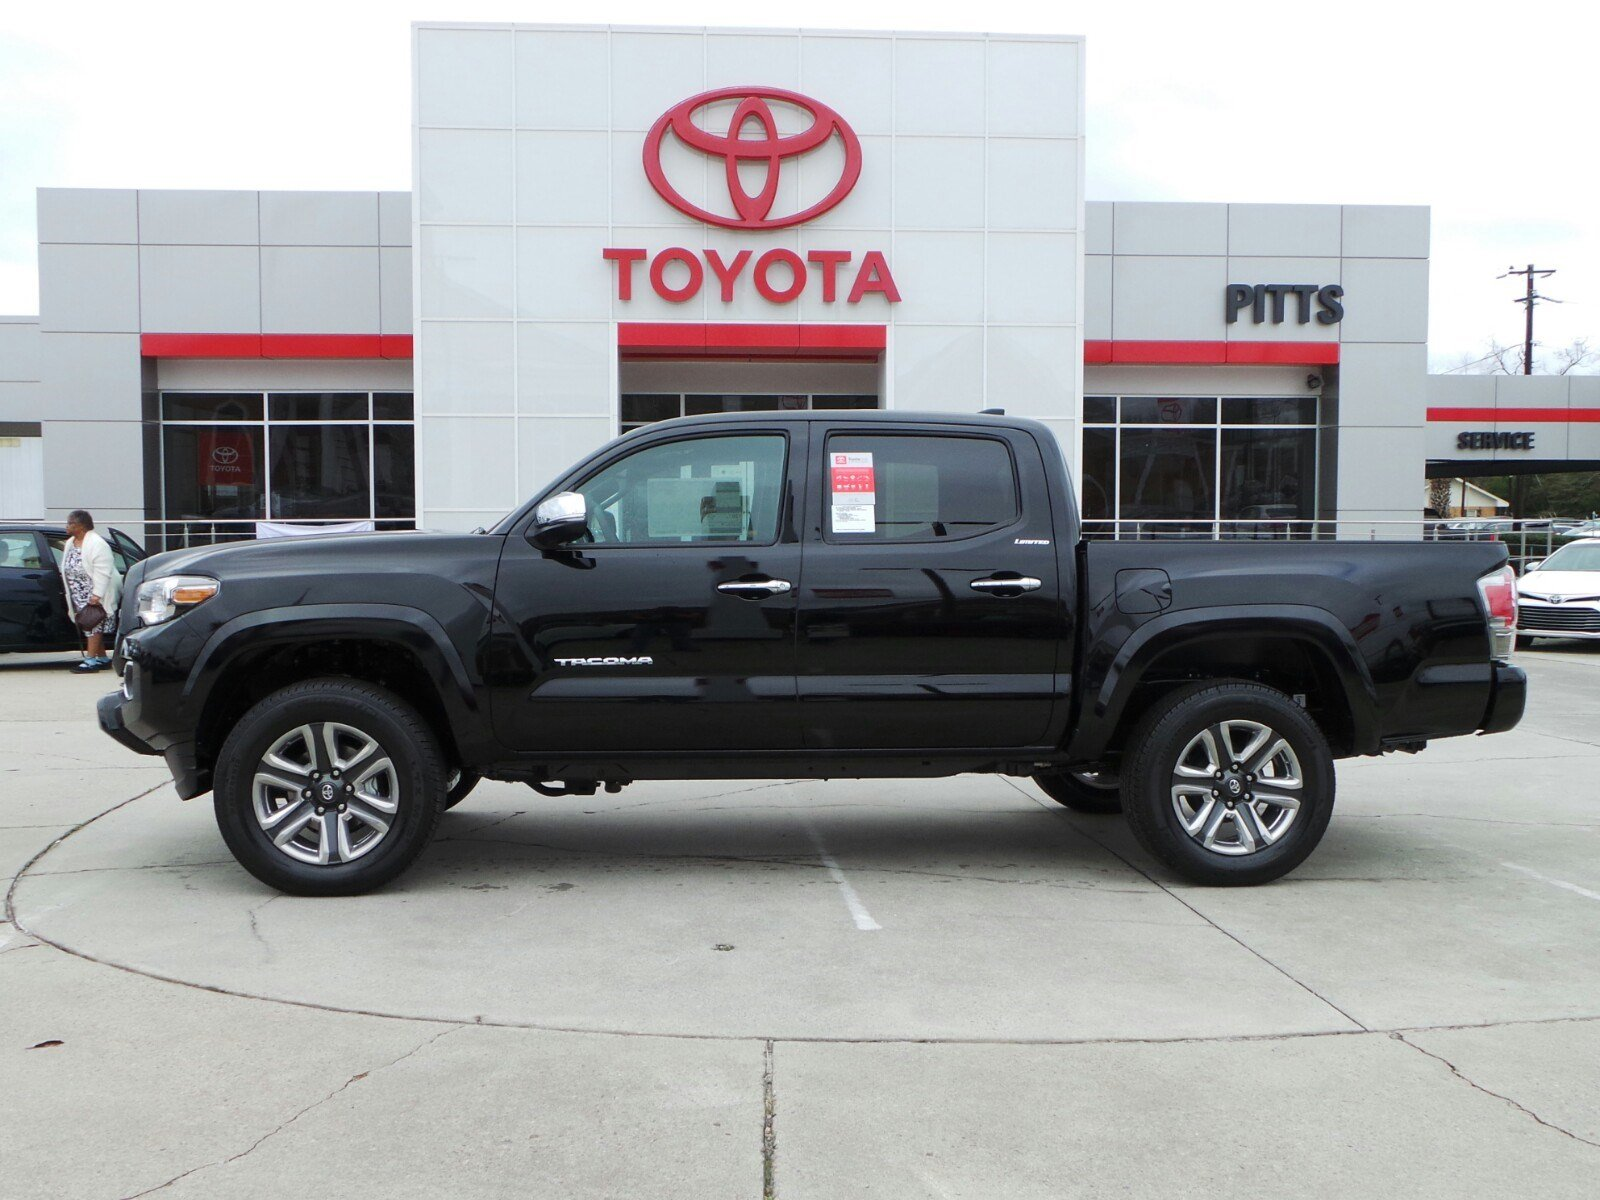 New 2018 Toyota Tacoma Limited Double Cab in Dublin #8035 | Pitts Toyota